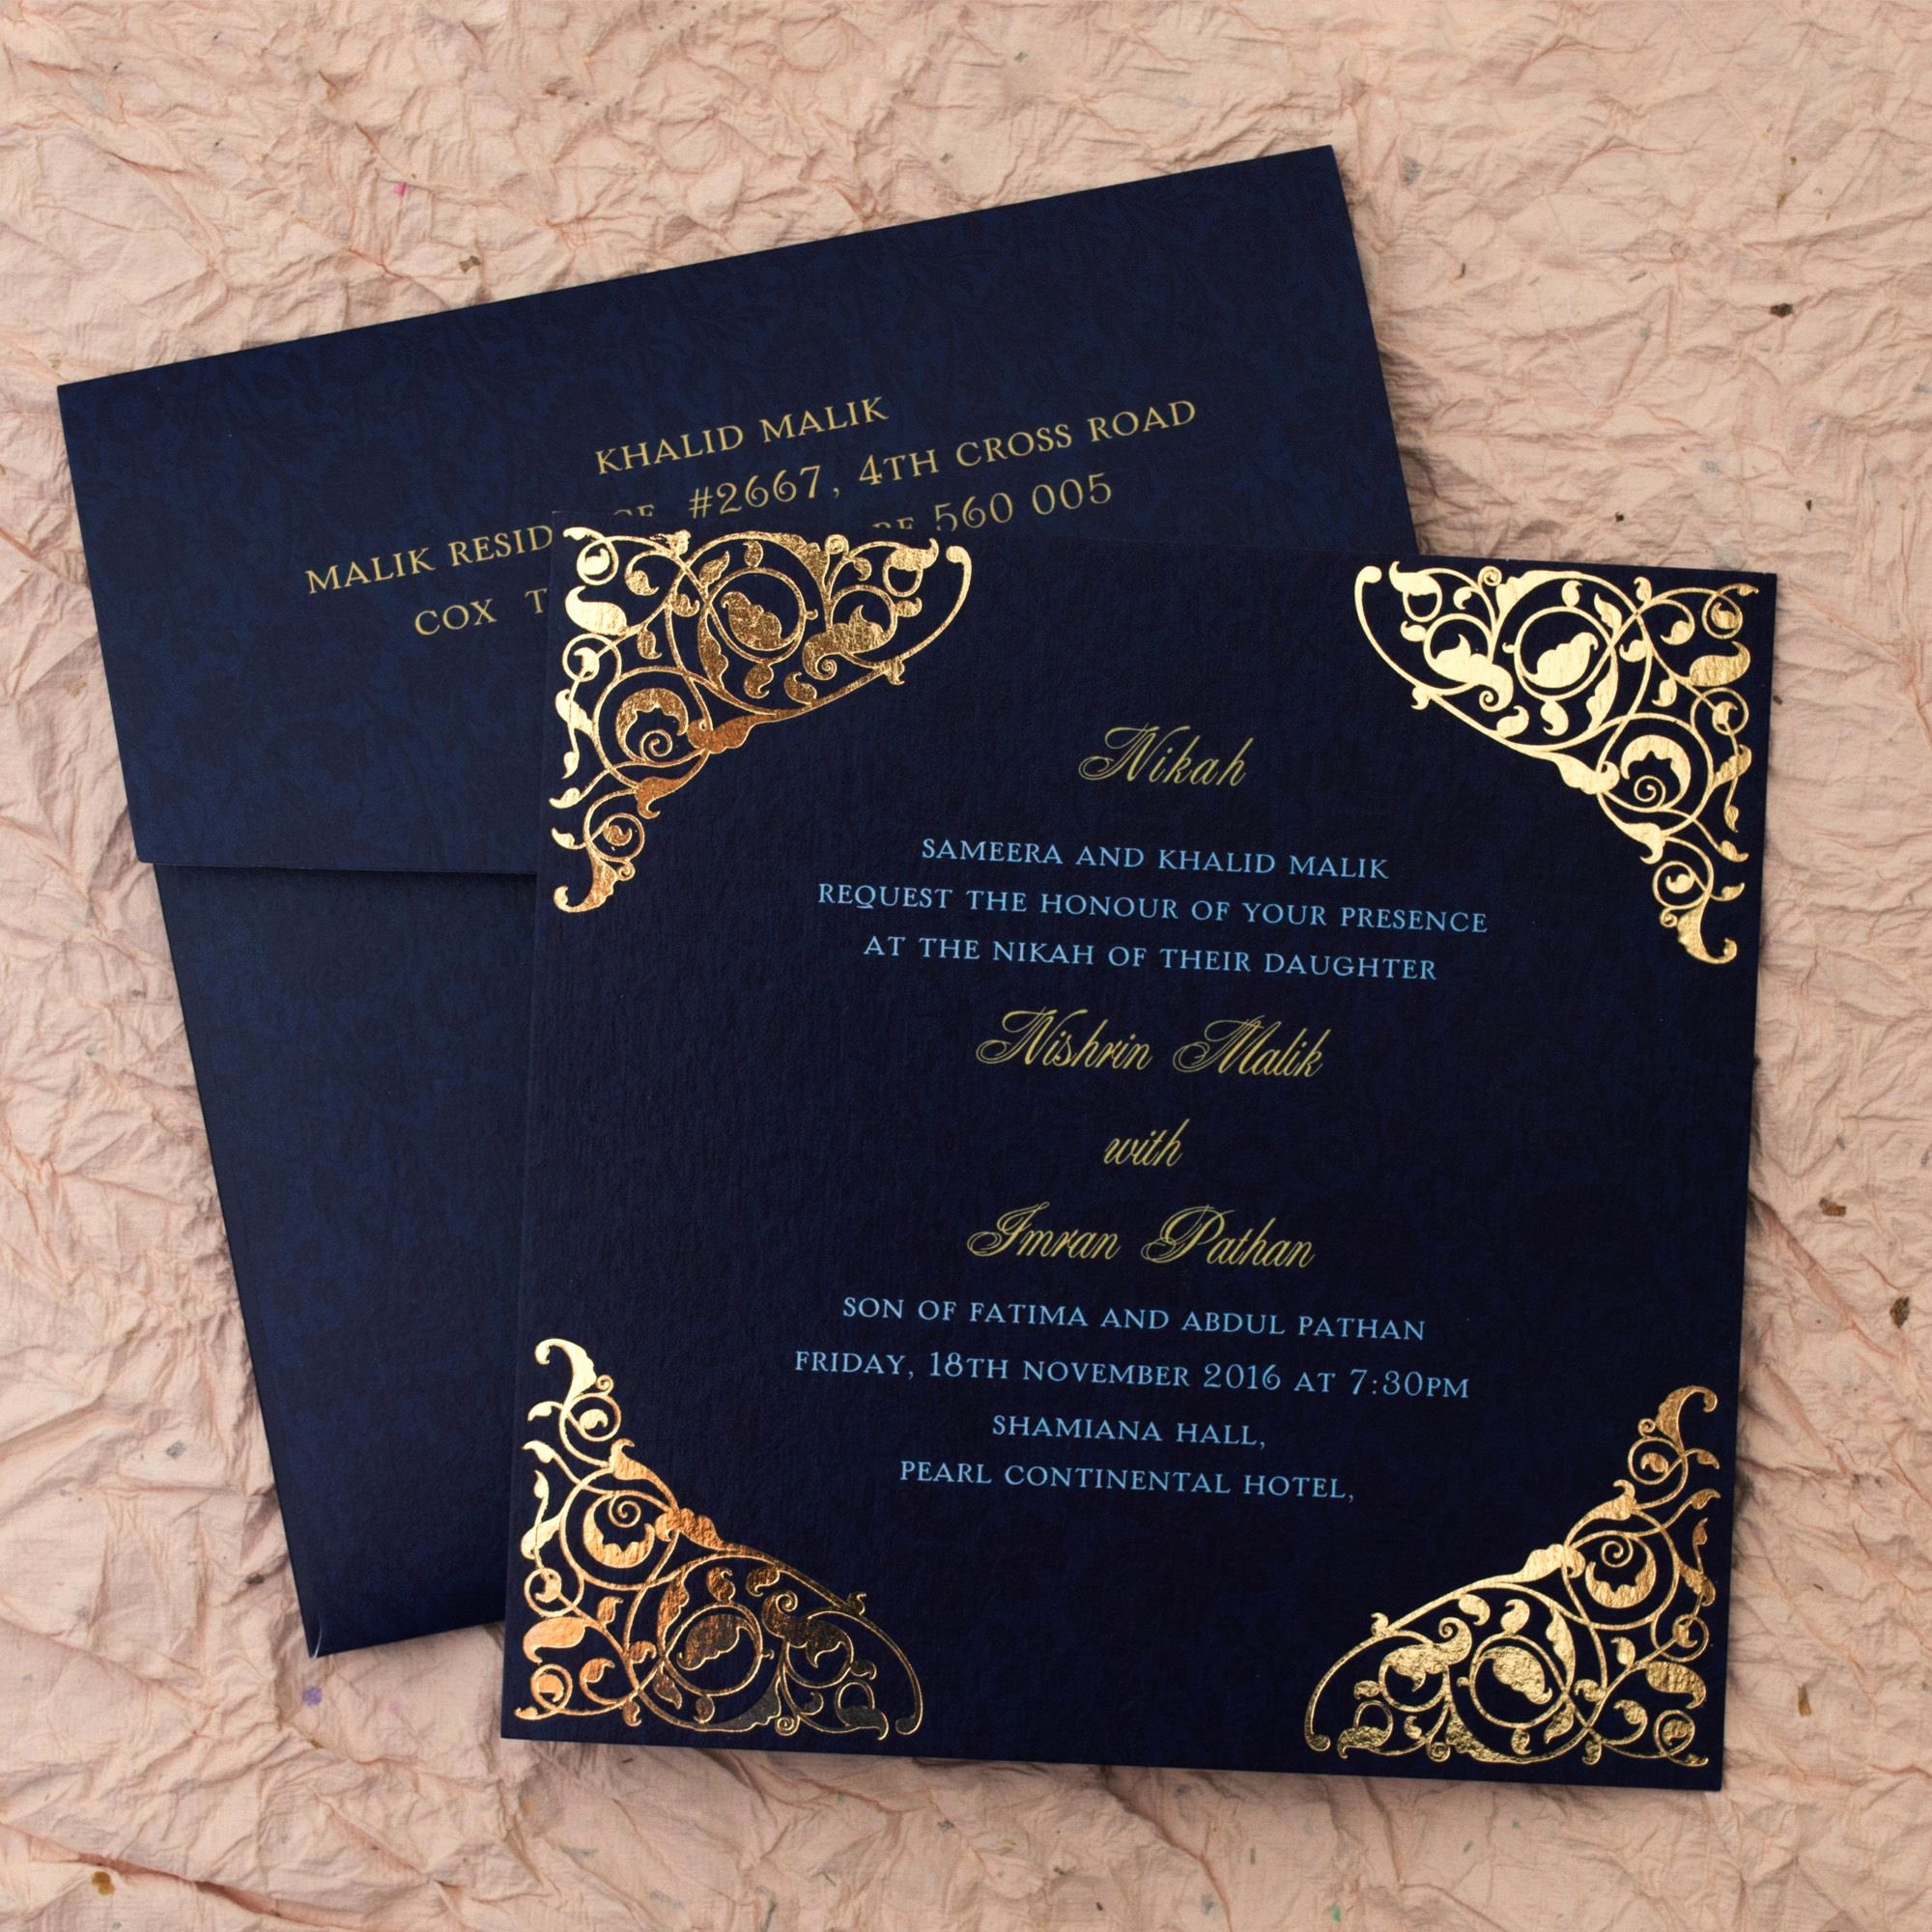 Marriage Invitation Card Design New Gulshan Blue Wedding islamic Cards Add A touch Of